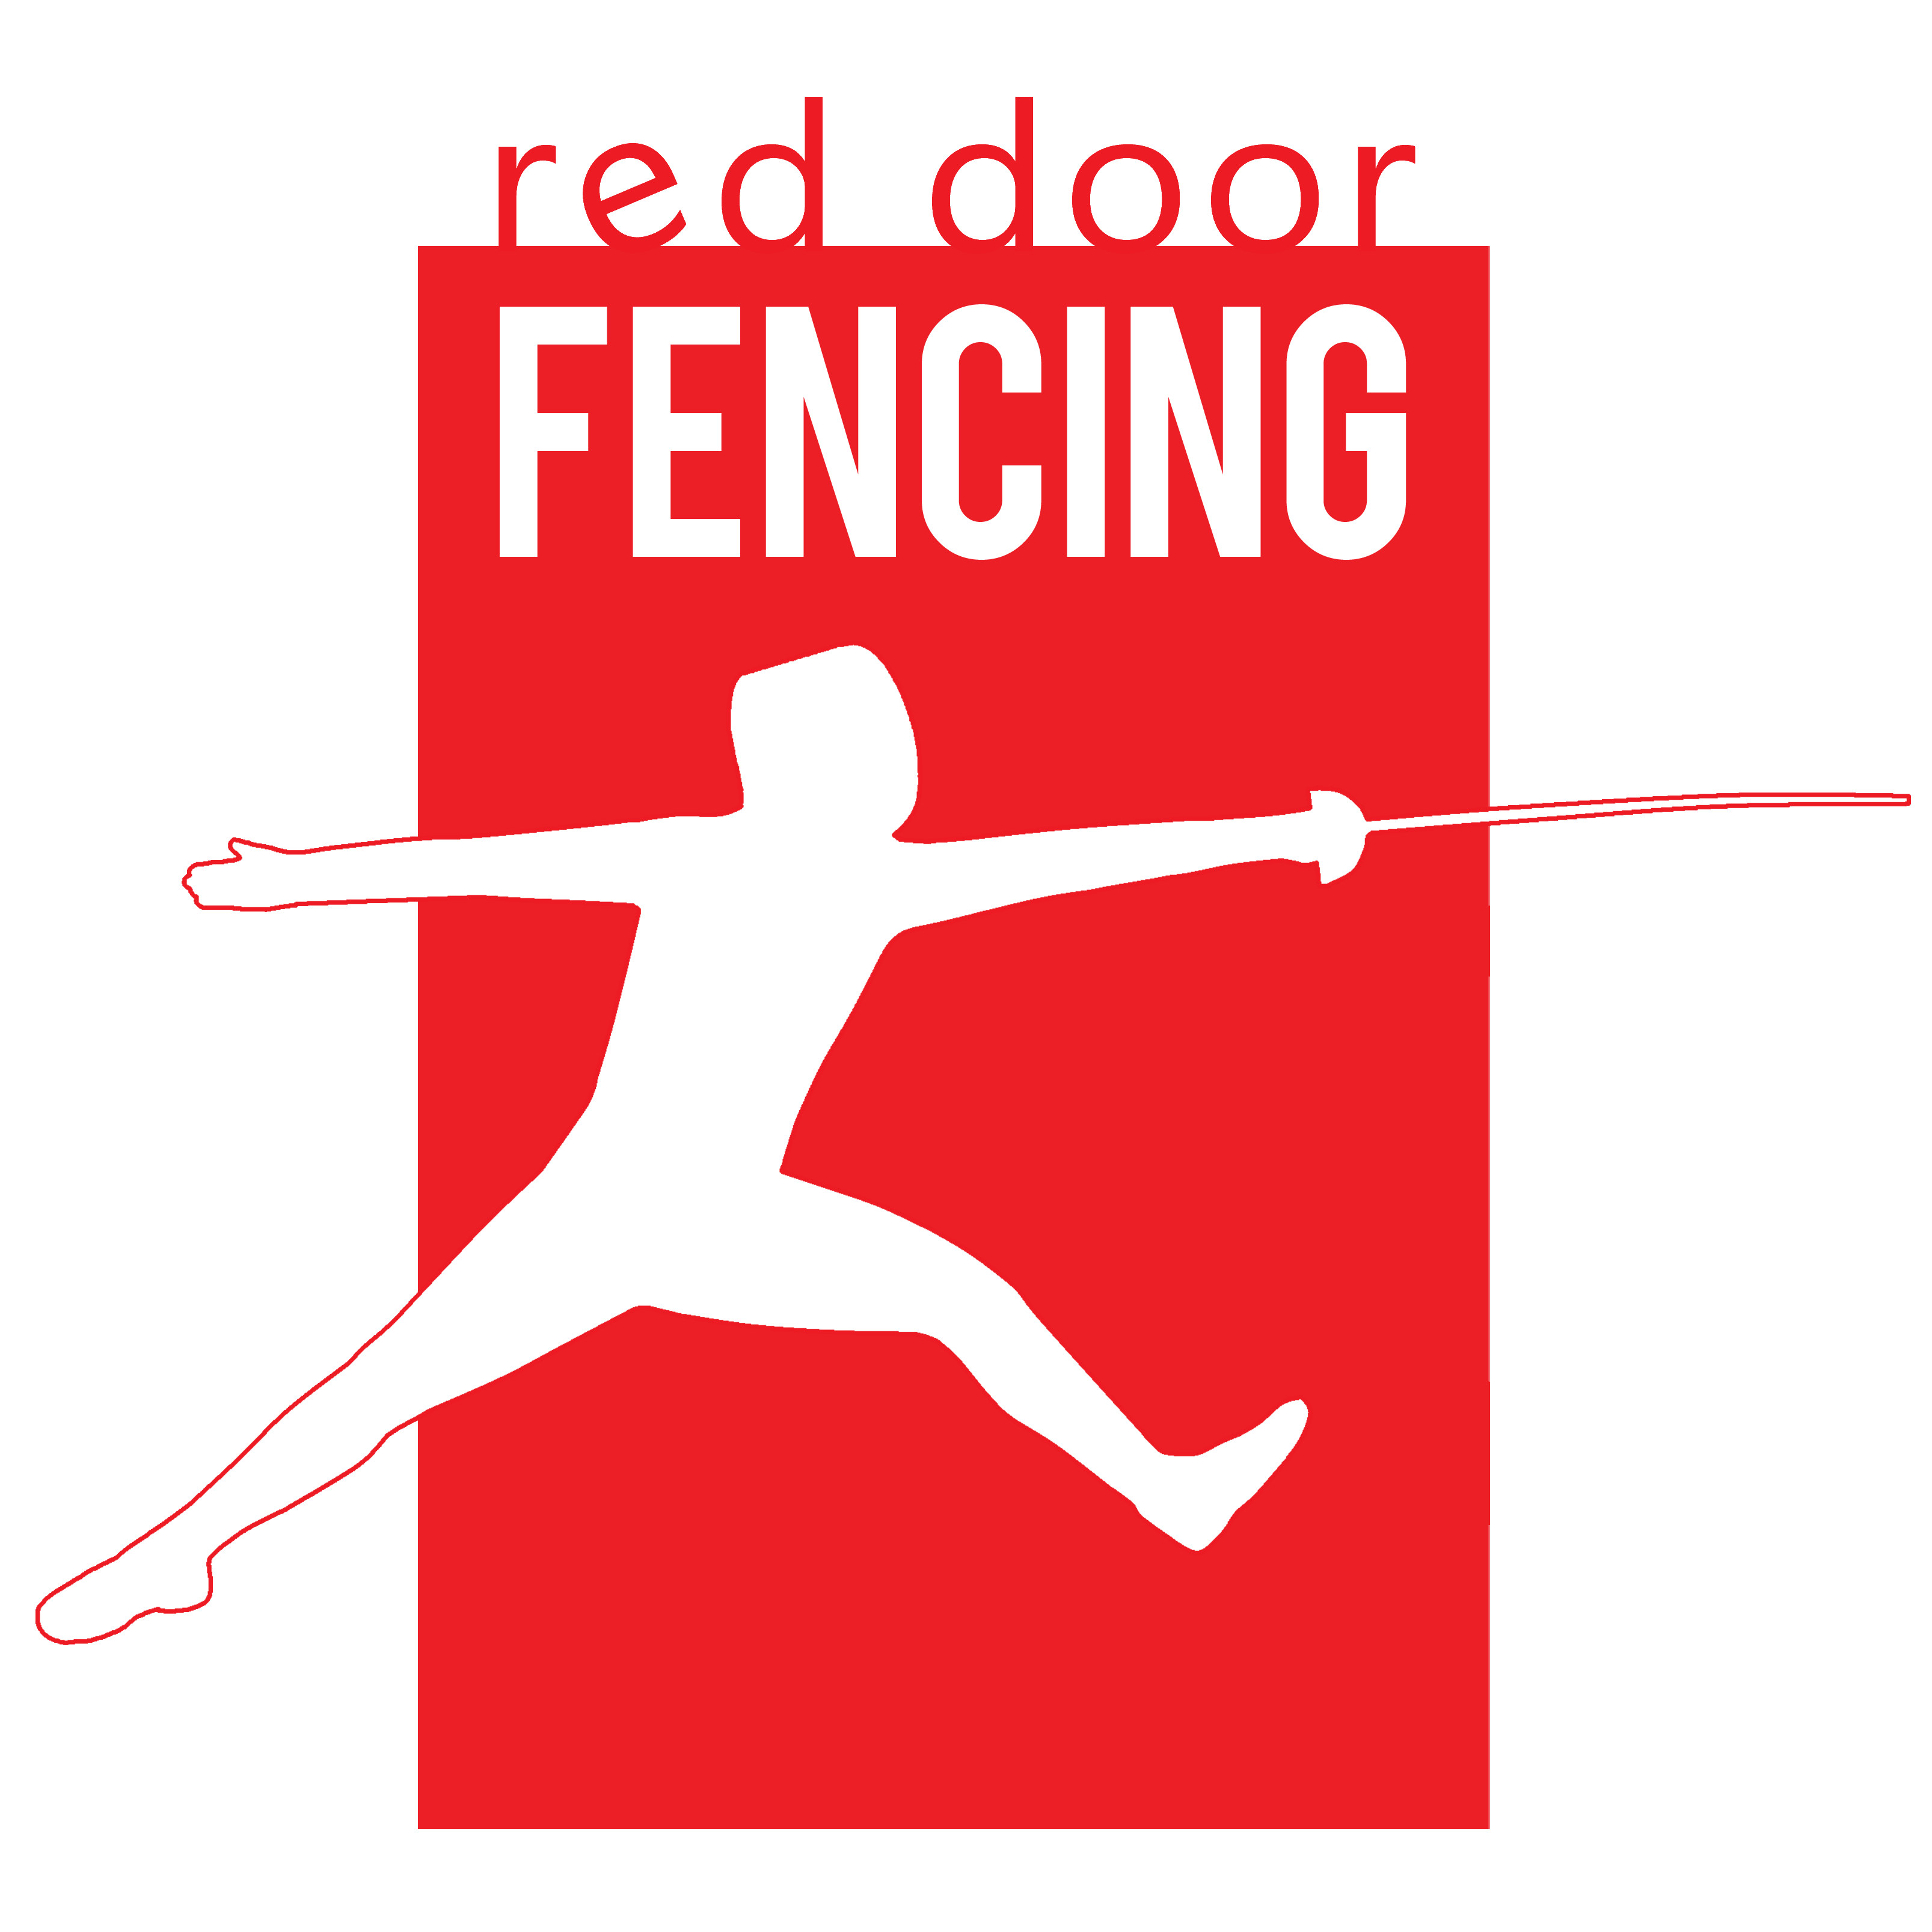 red door fencing